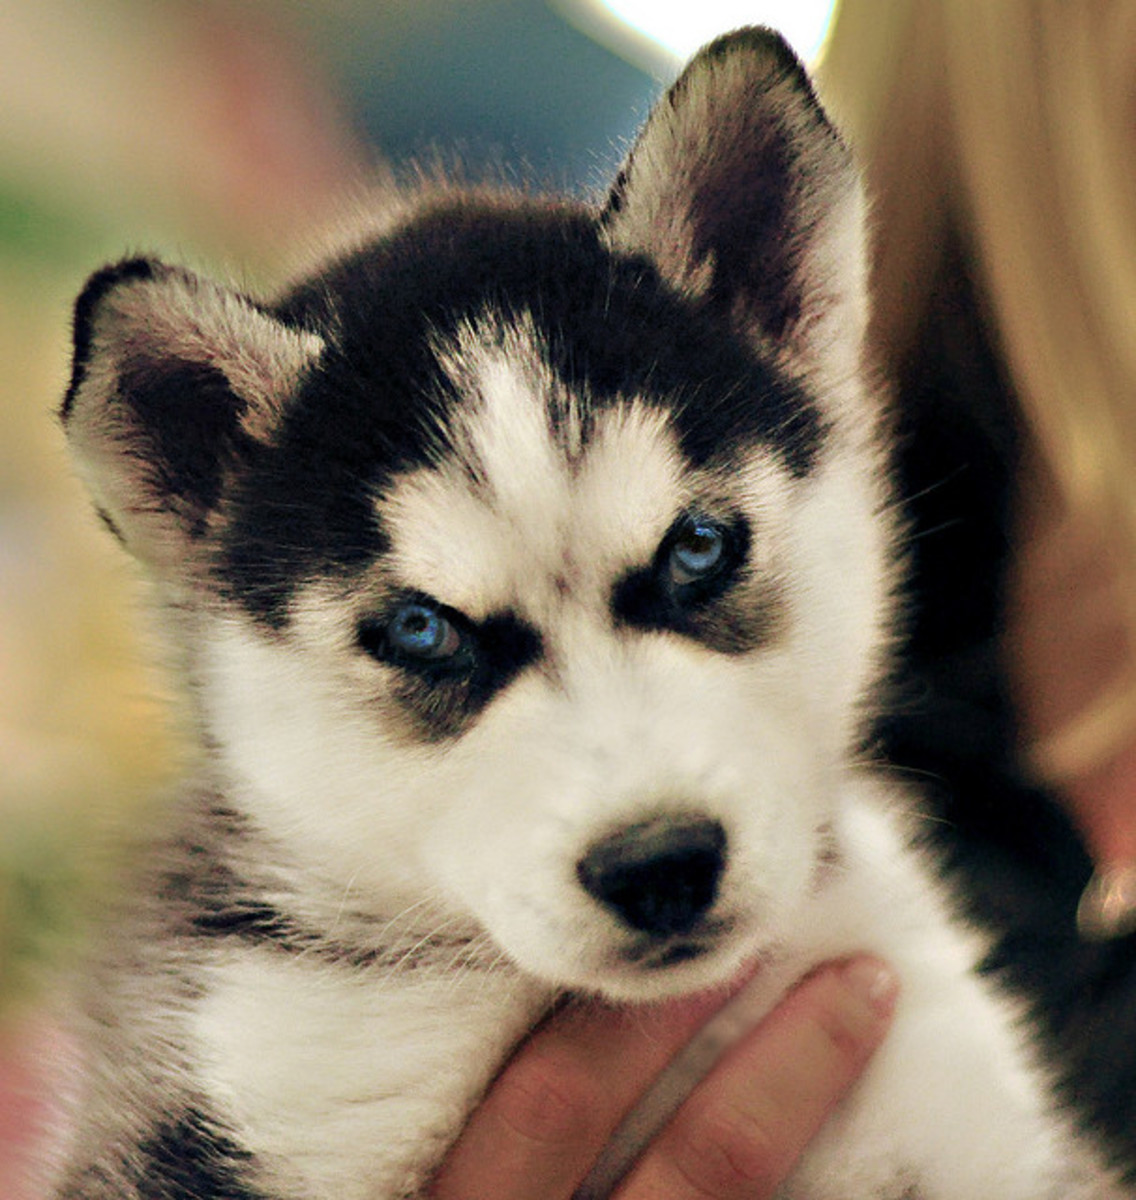 A Siberian Husky puppy with blue eyes and the amazing facial markings seen in the breed.